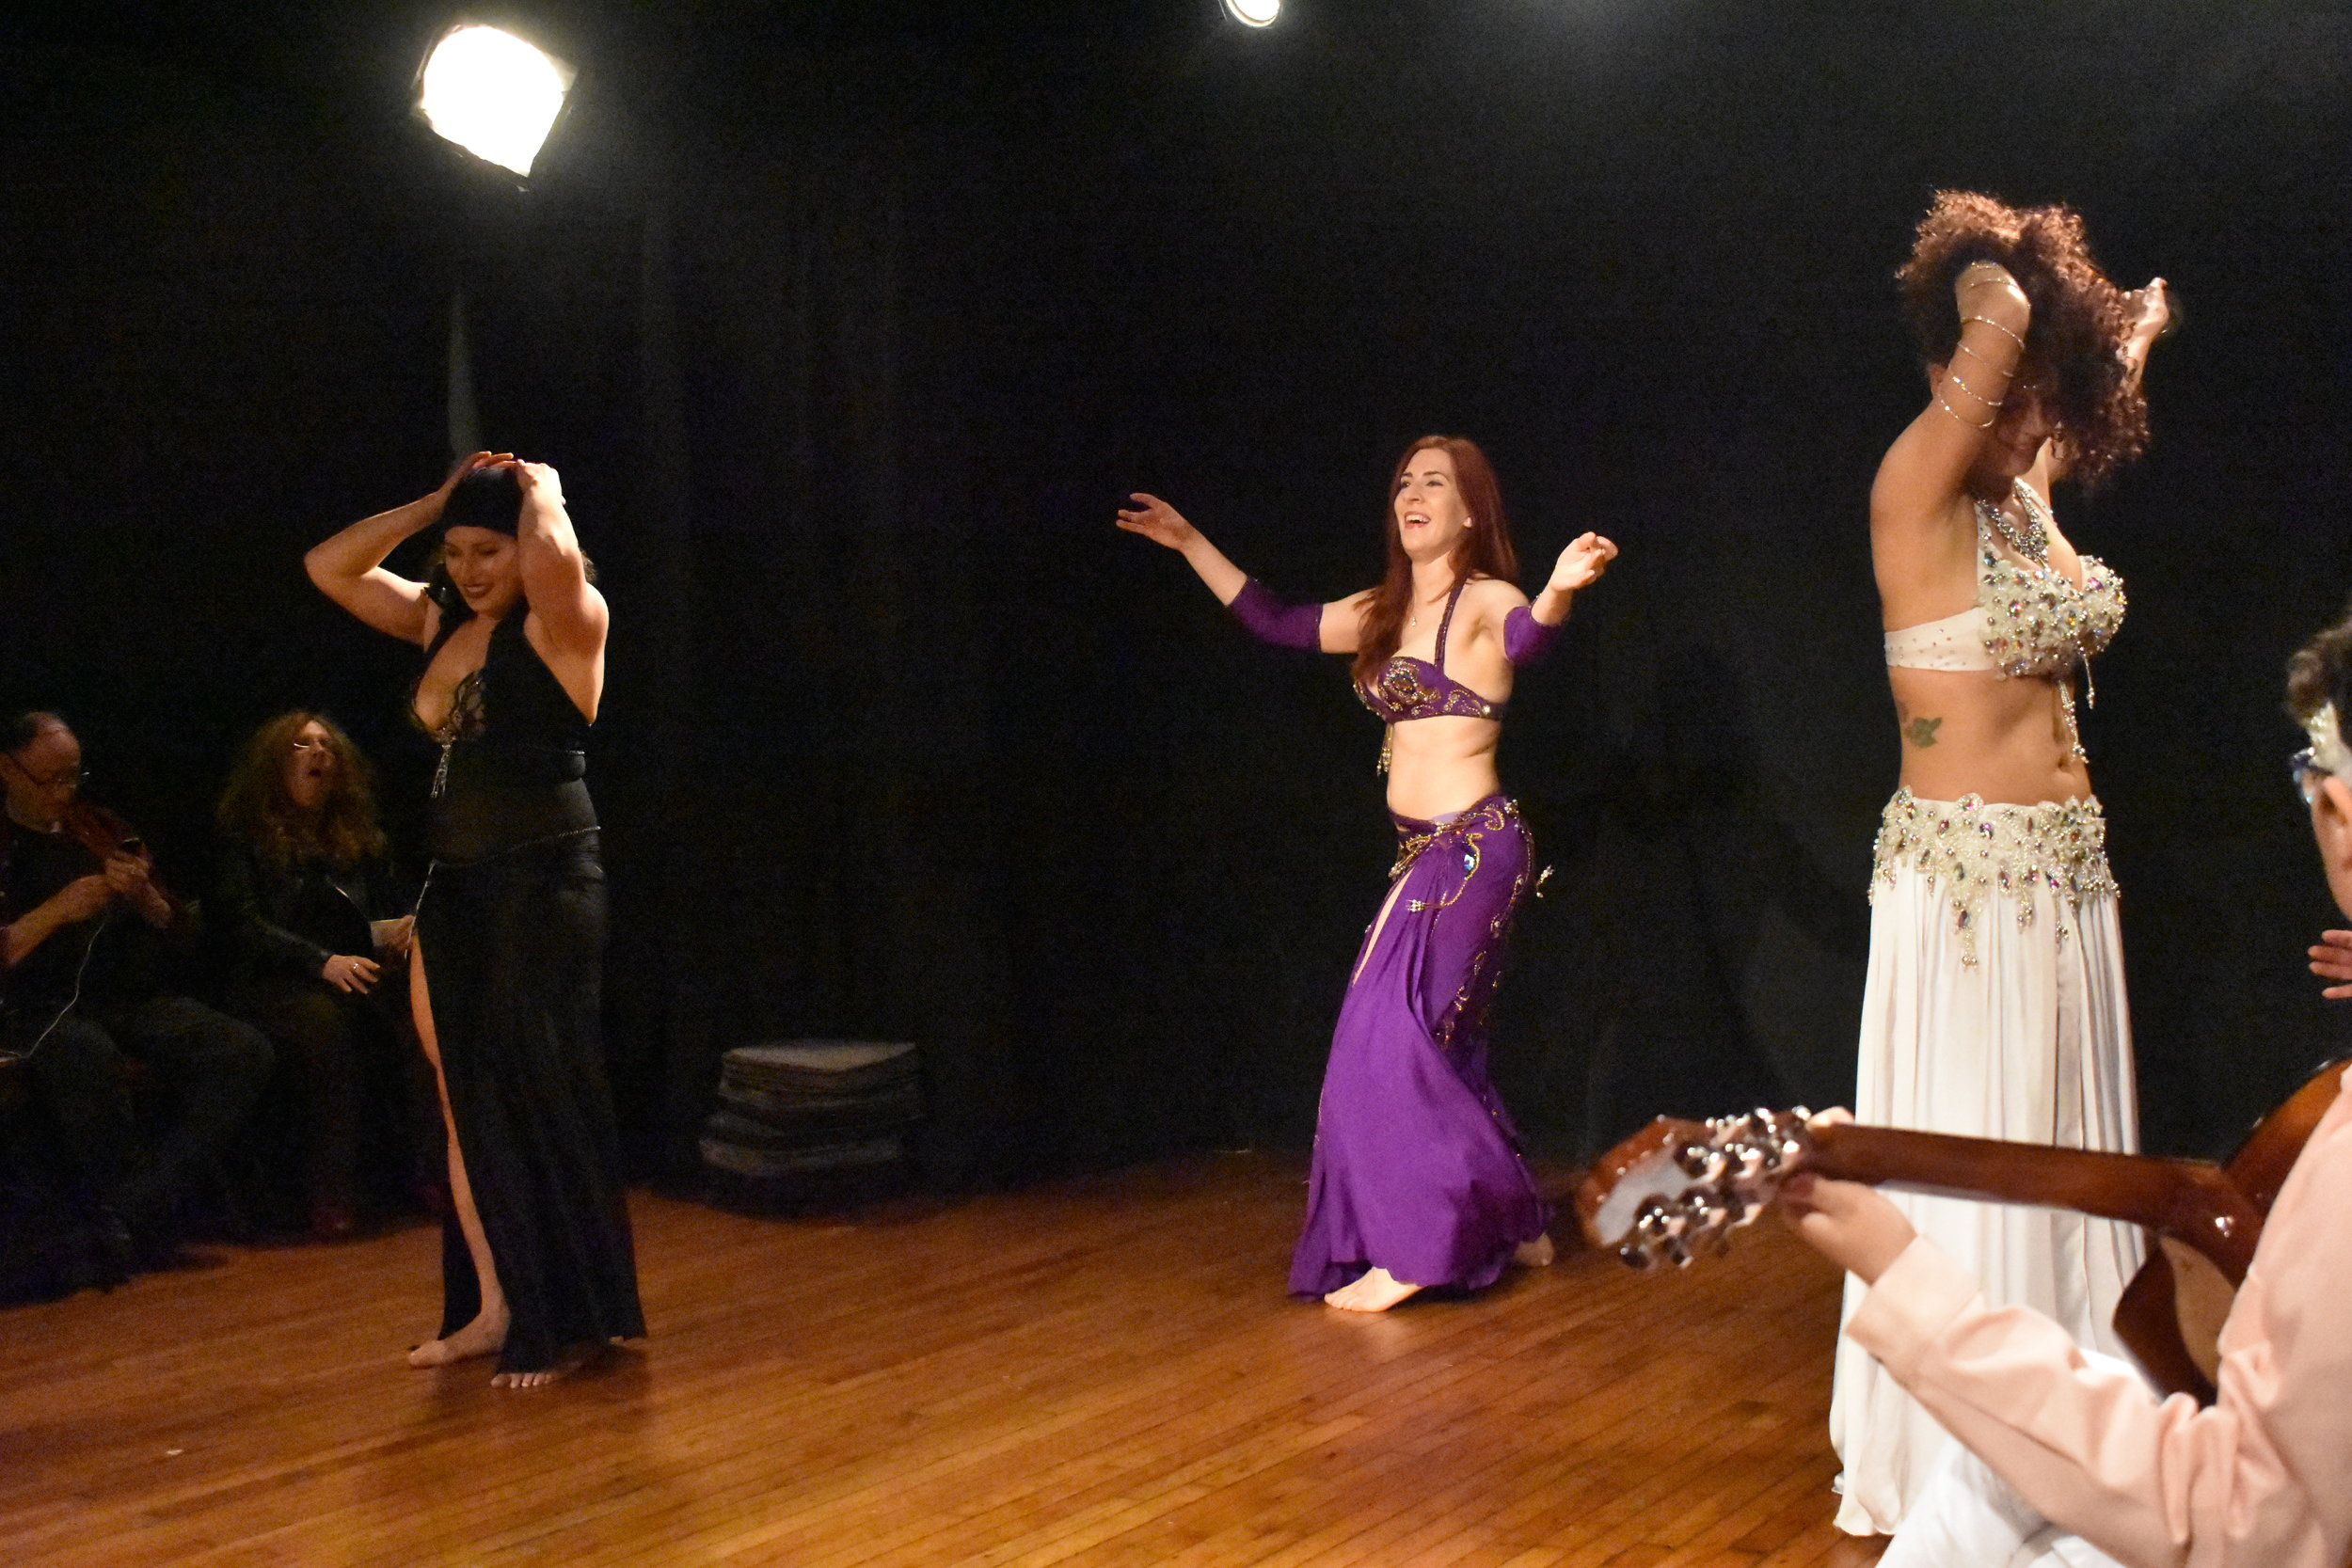 Shayna Maydela perform belly dance at the intersection of spirituality and sensuality. Photo by Mollie Block